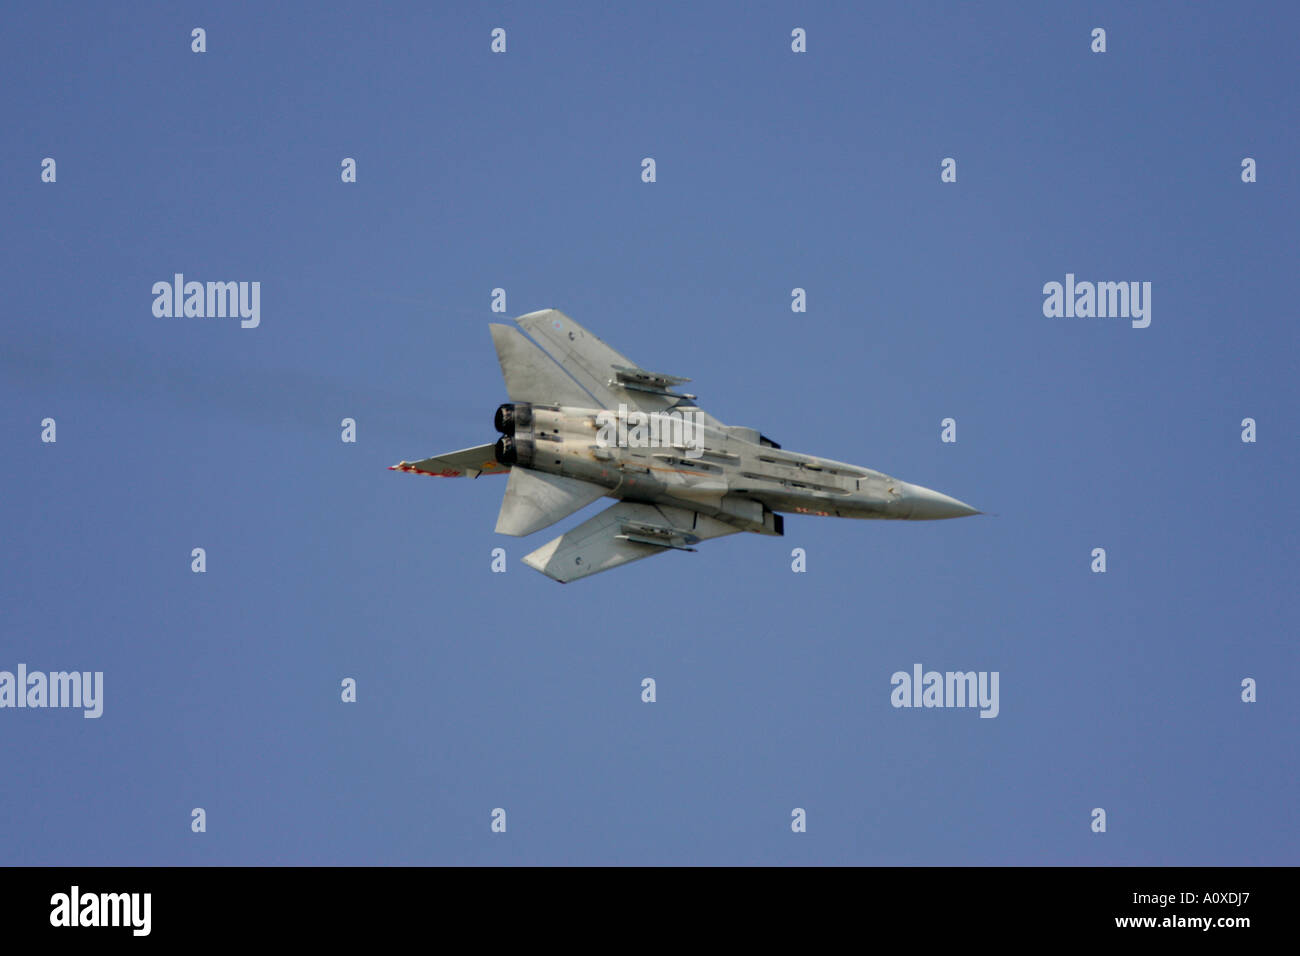 RAF Tornado F3 flying in blue sky RIAT2005 RAF Fairford Gloucestershire England UK - Stock Image